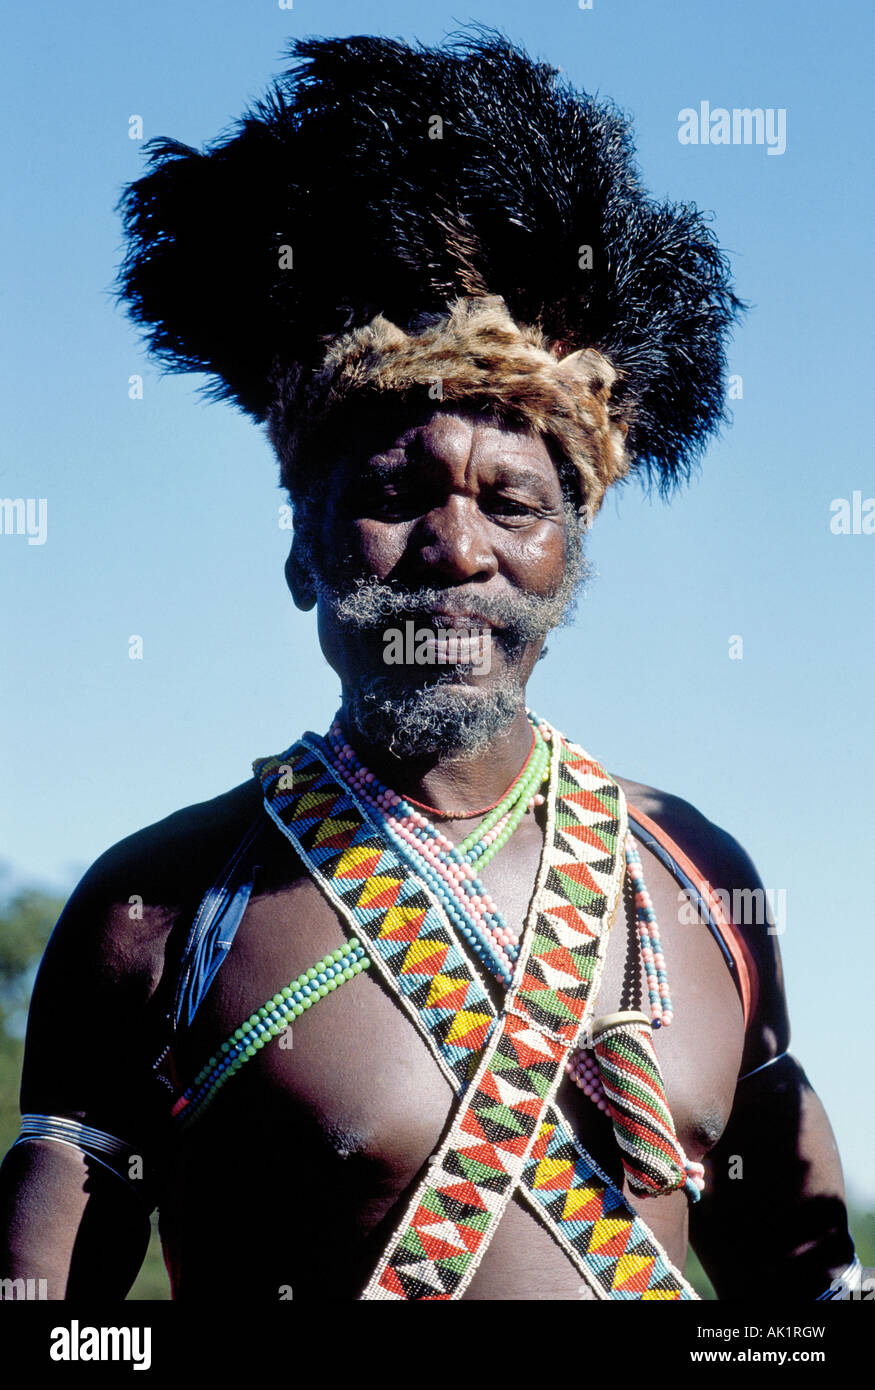 Portrait of a Zulu Chief dressed in traditional dress in Zululand South Africa - Stock Image